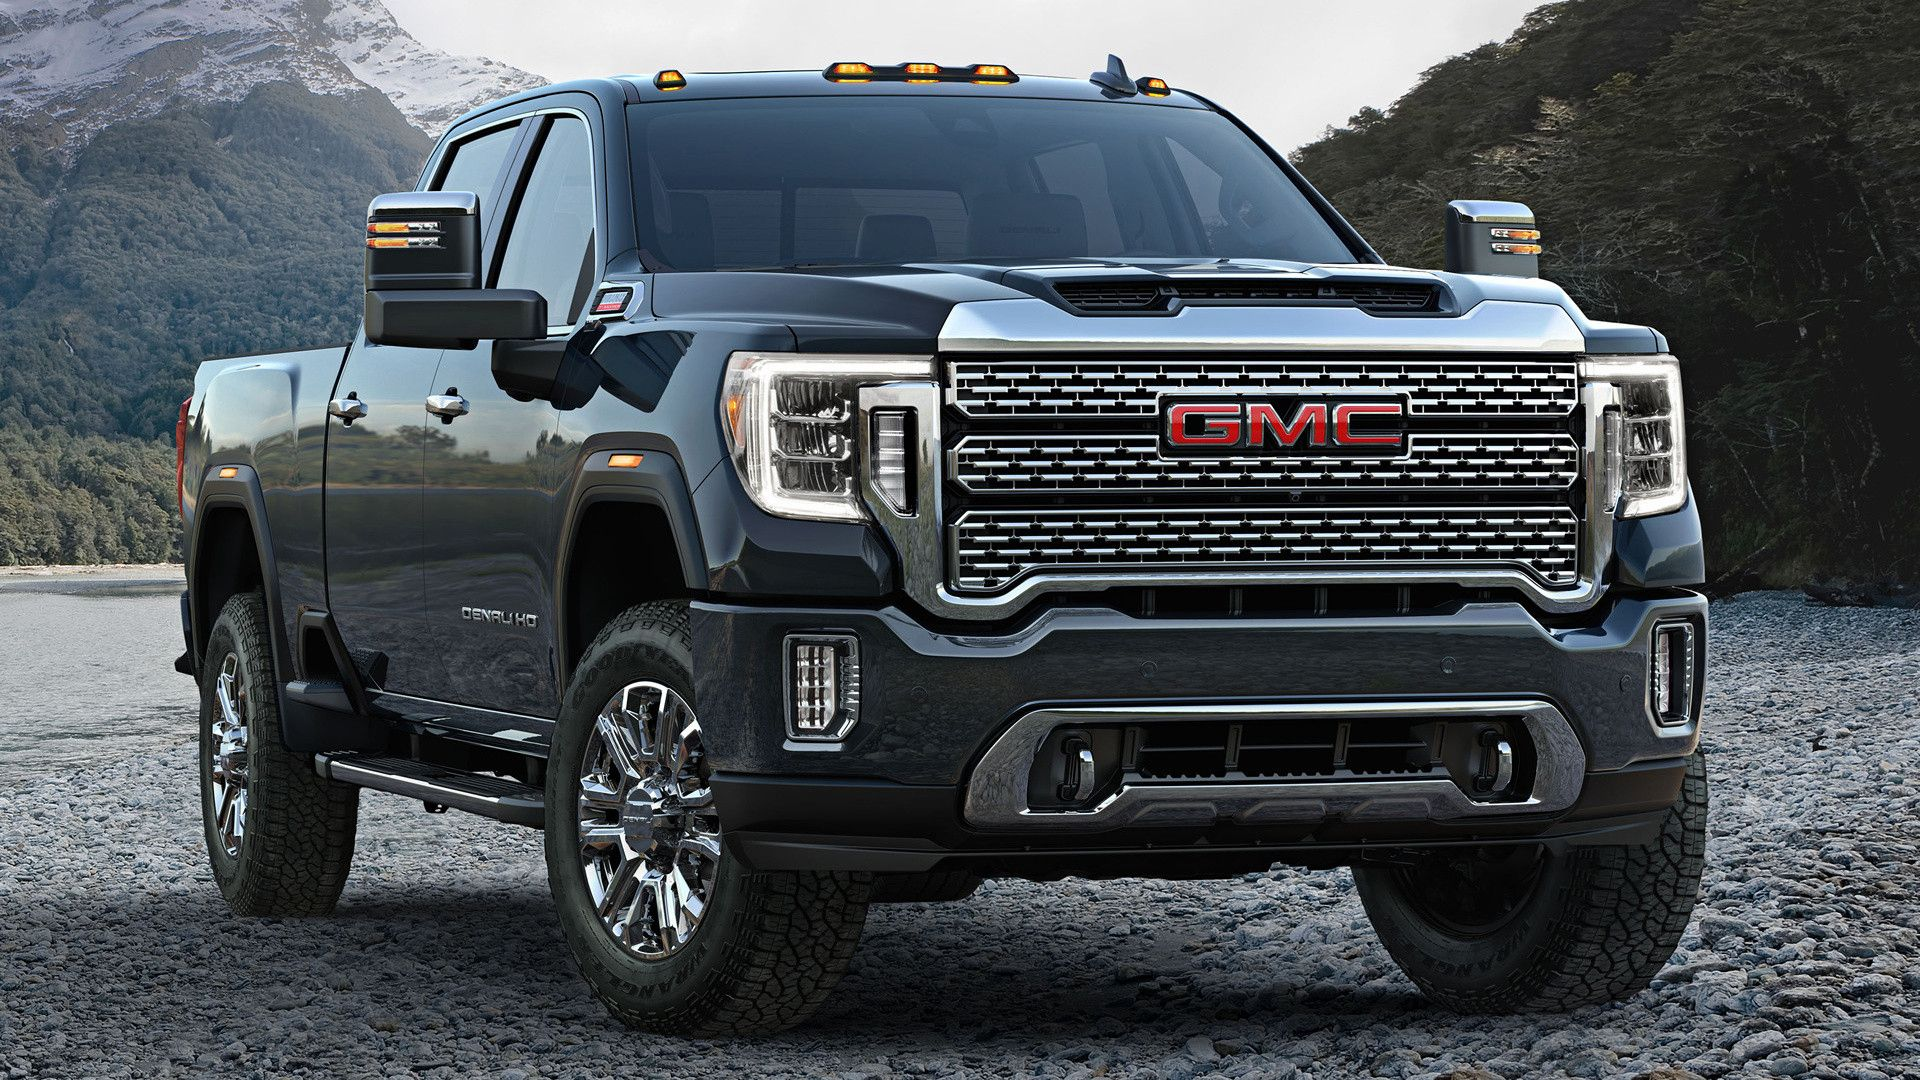 Gmc Sierra 2500 Denali 2020 Price Check More At Https Blog Dailymaza Me Gmc Sierra 2500 Denali 2020 Price In 2020 Gmc Trucks Gmc Sierra Gmc Sierra 2500hd